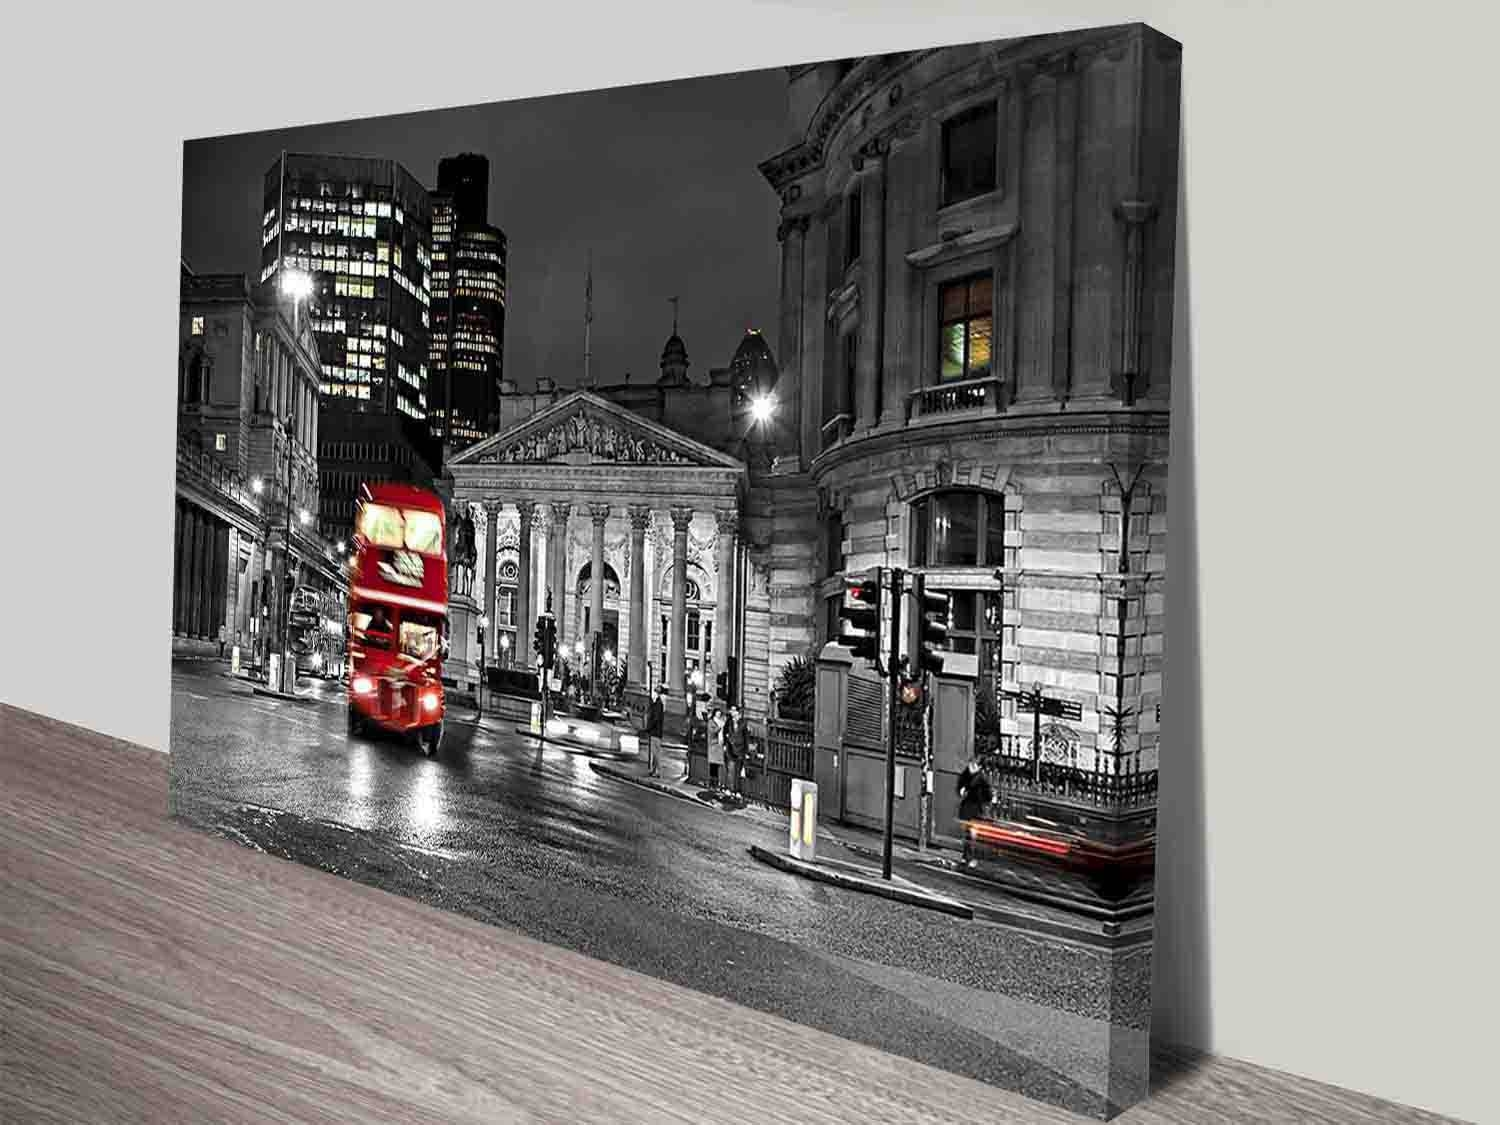 Red Double Decker Bus Black And White City Scene Wall Art Intended For Current London Scene Wall Art (View 14 of 20)